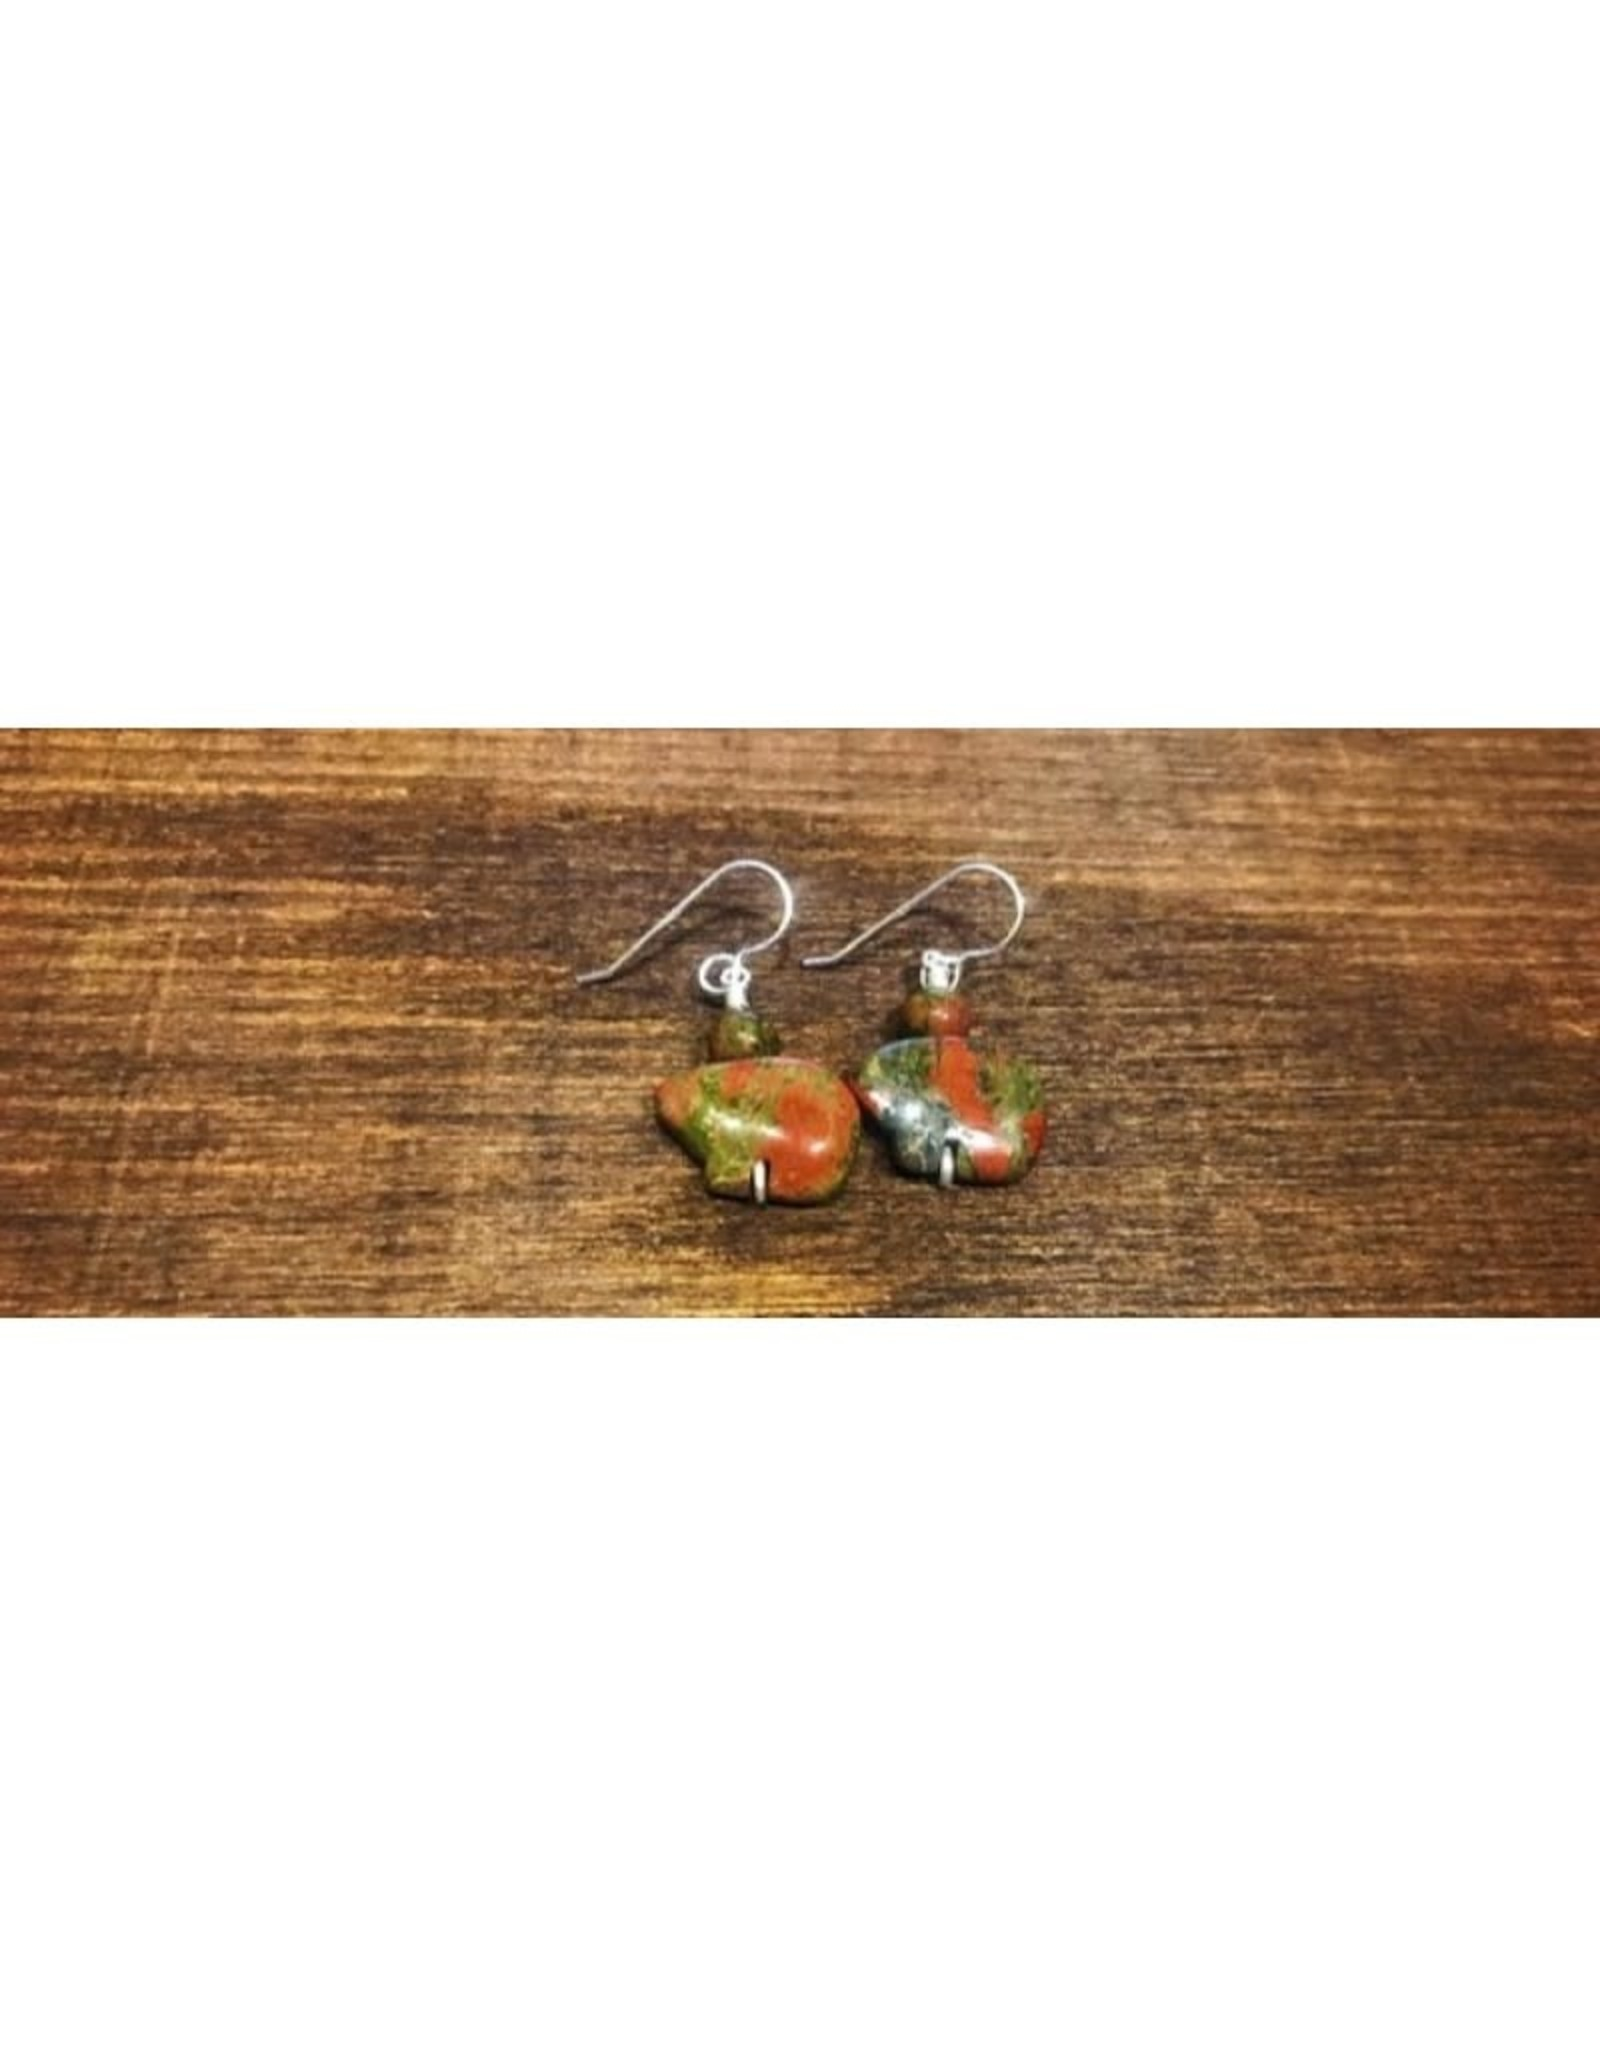 French Hook Earrings - Unakite Bears w/ Bead